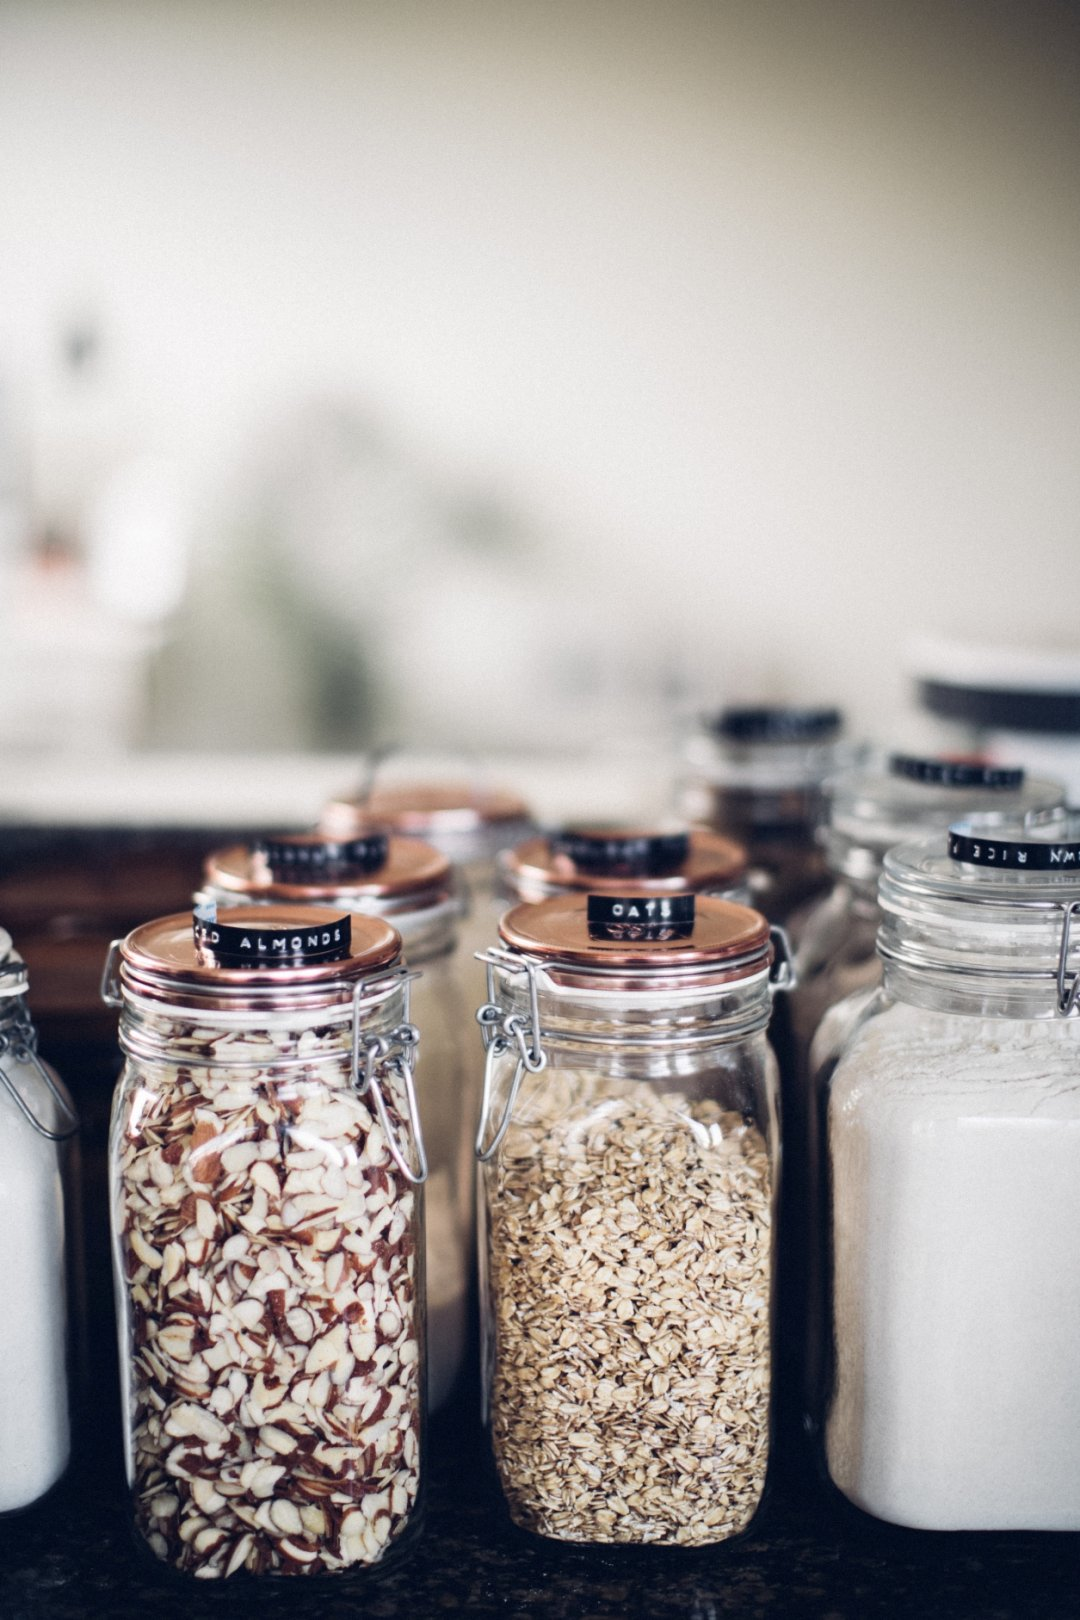 Nuts and other ingredients in glass jars with copper lids